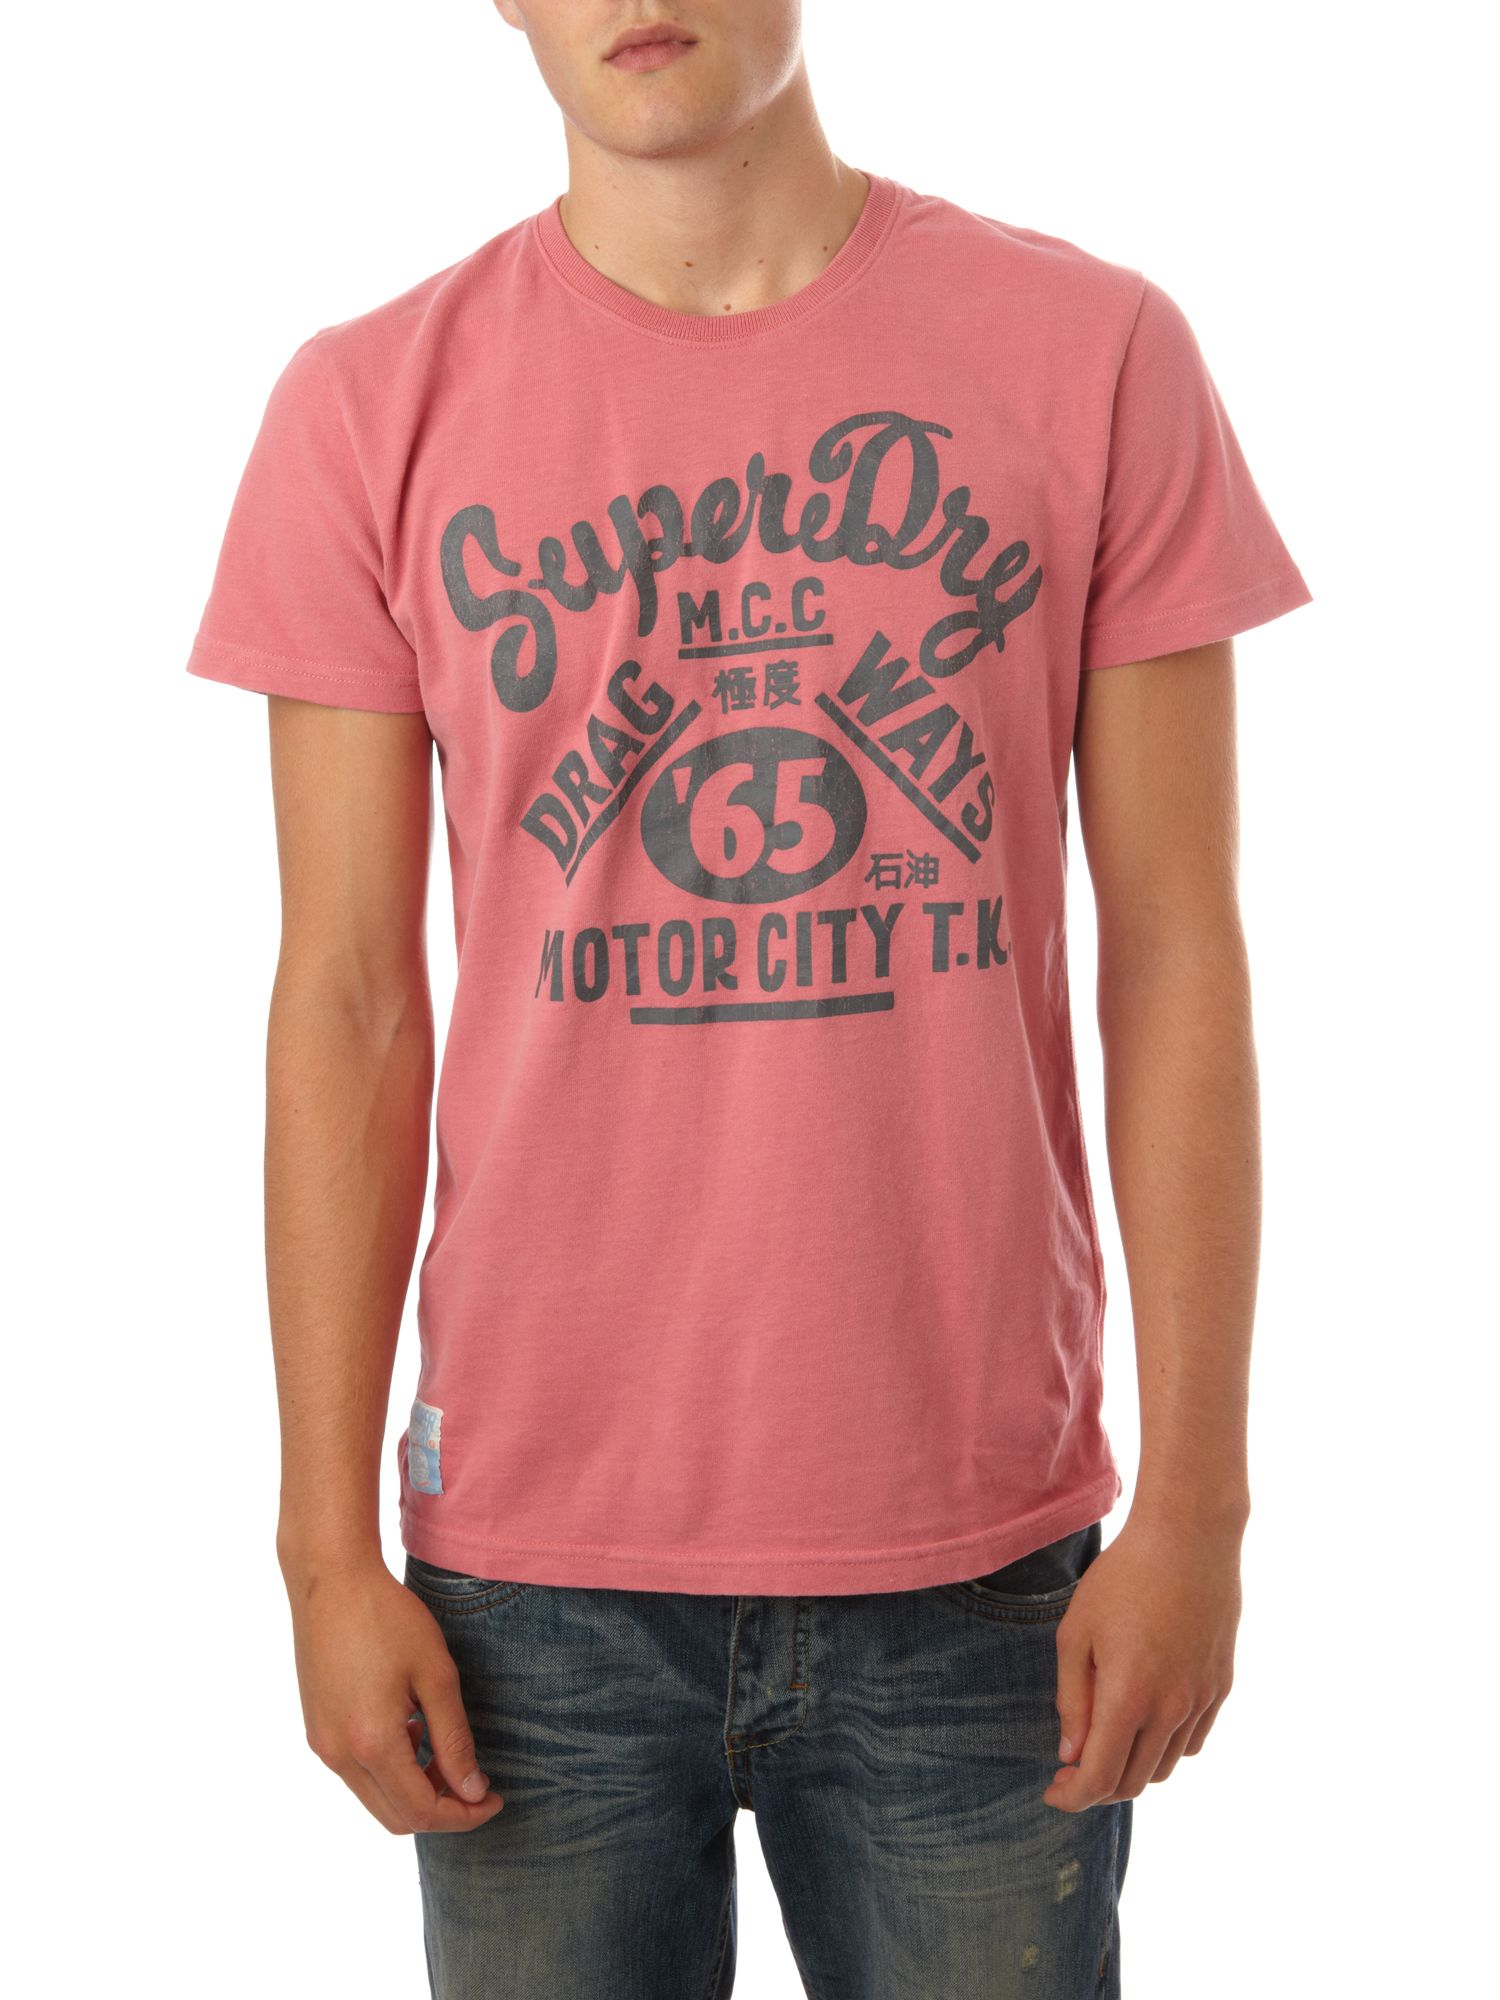 Superdry tin tab motor city t shirt review compare for T shirt company reviews